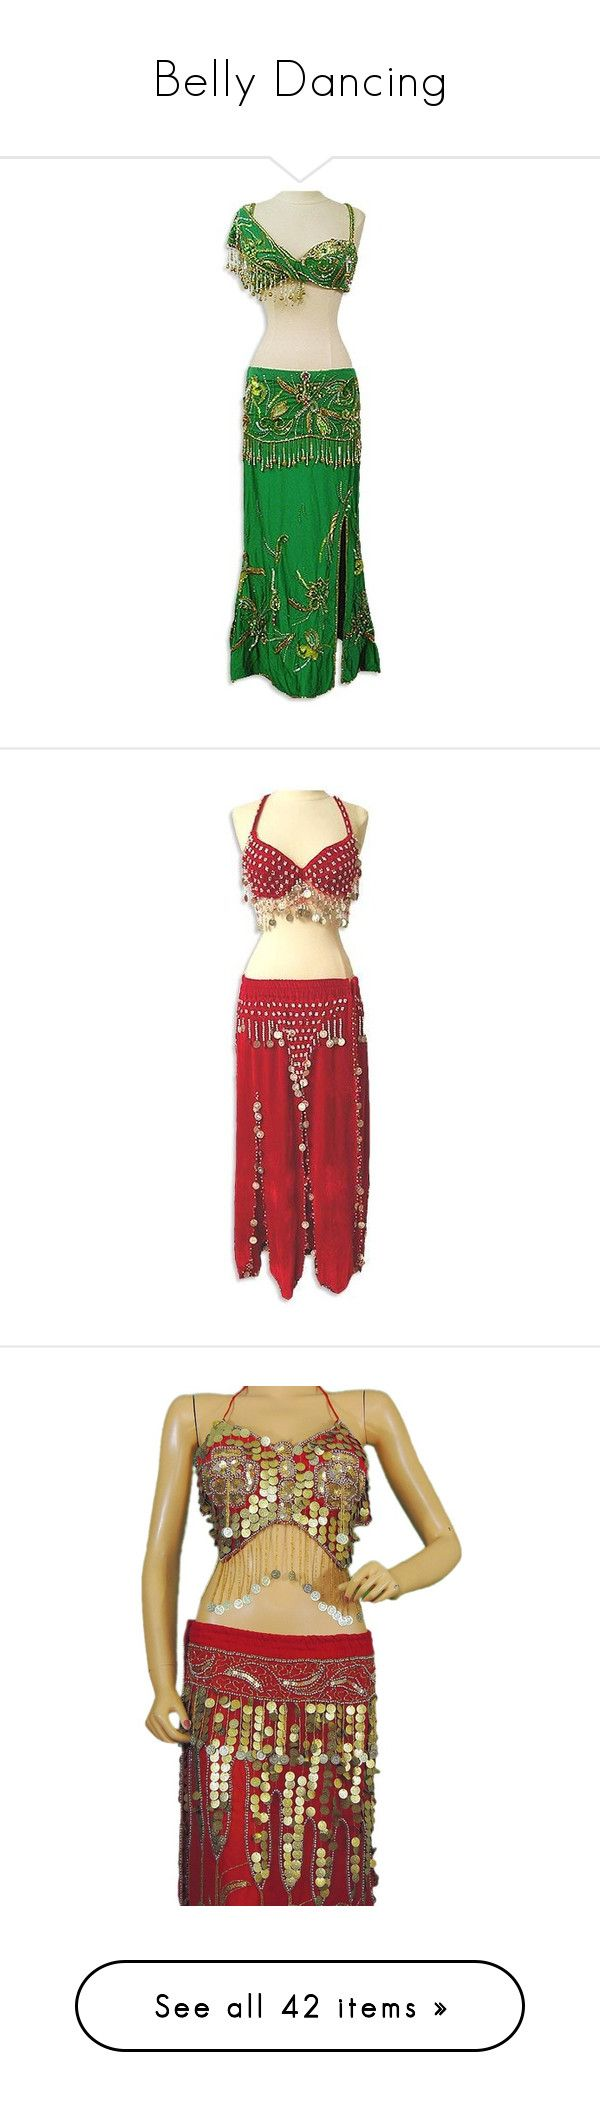 """Belly Dancing"" by redhead97caro ❤ liked on Polyvore featuring costumes, dresses, belly dancer costume, belly dancer halloween costume, green costumes, green halloween costumes, egyptian halloween costumes, red costumes, red halloween costumes and red belly dancer costume"